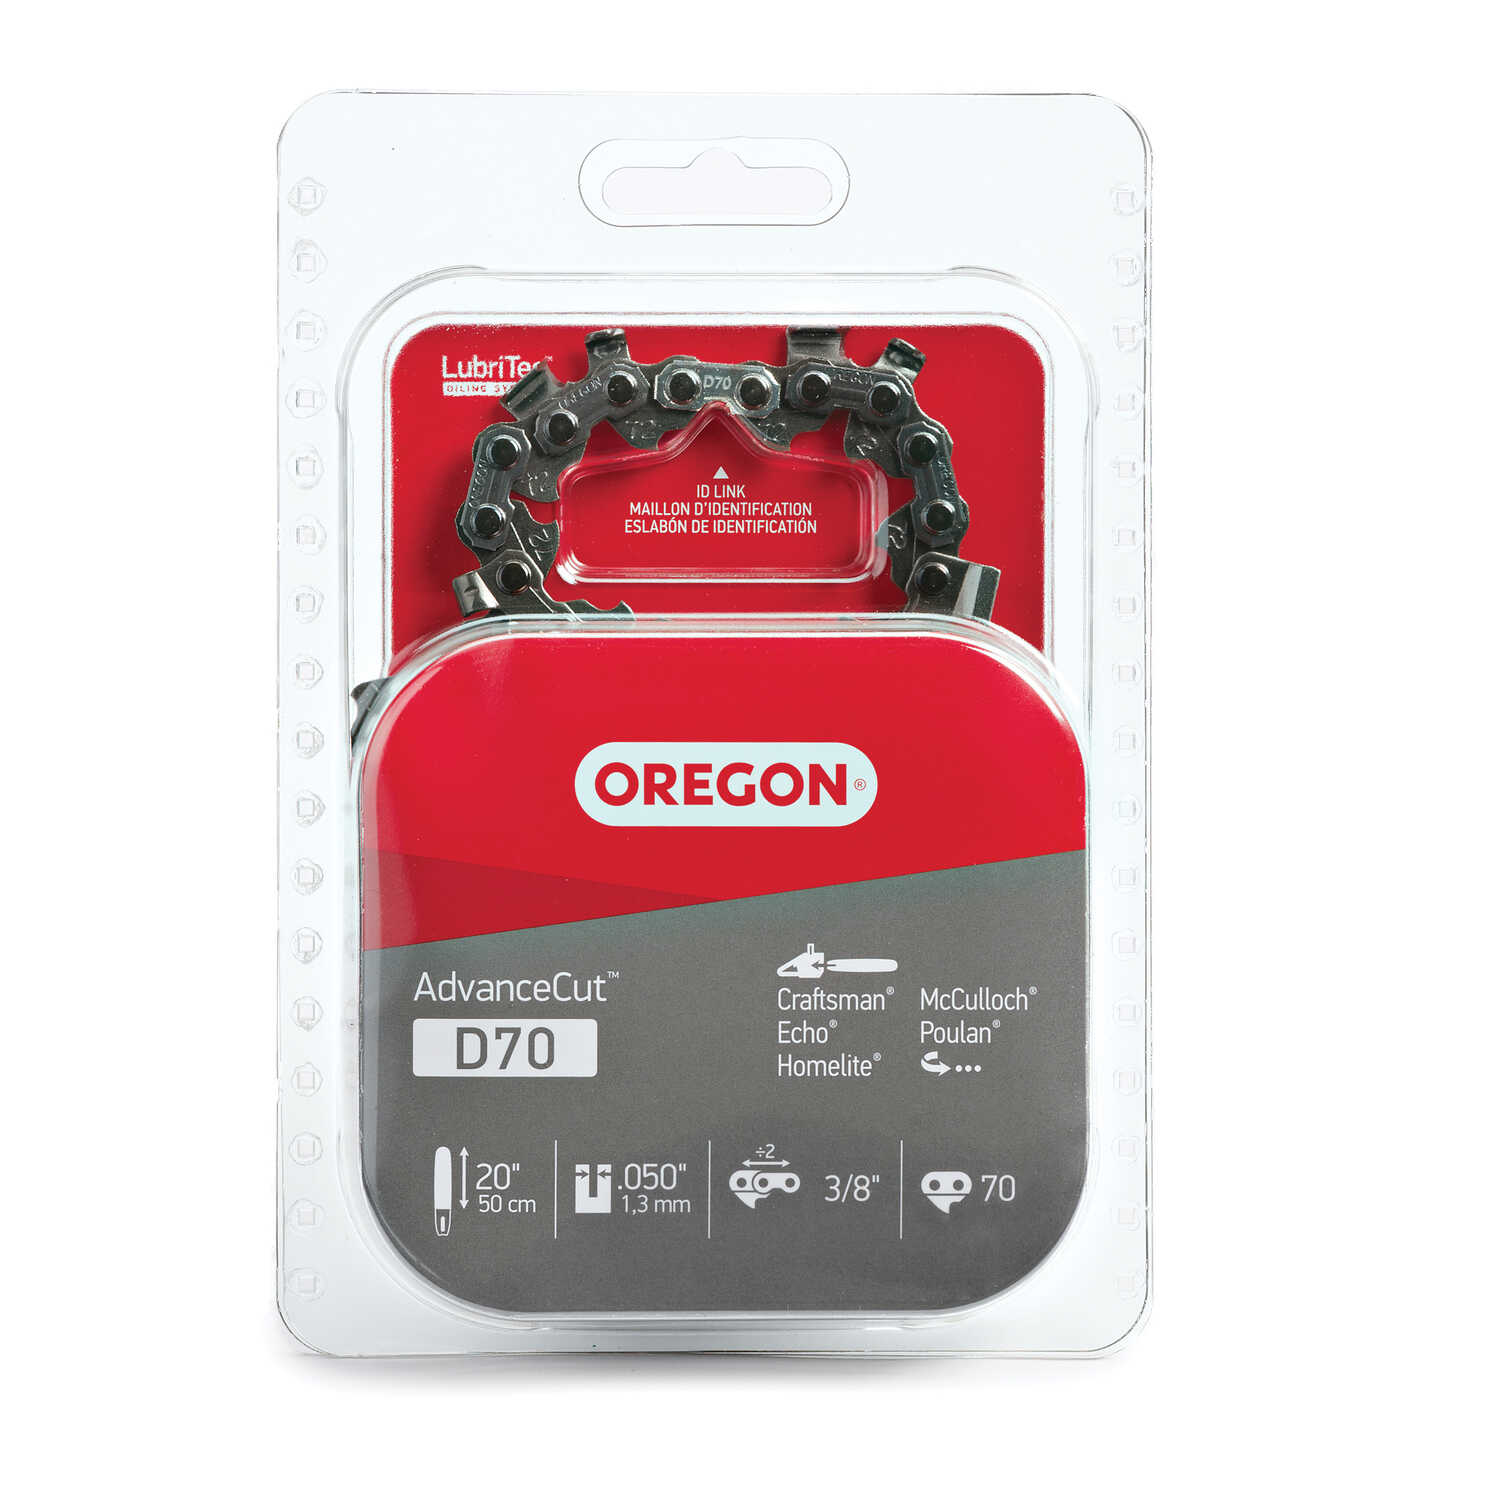 Oregon  Advance Cut  20 in. 70 links Chainsaw Chain